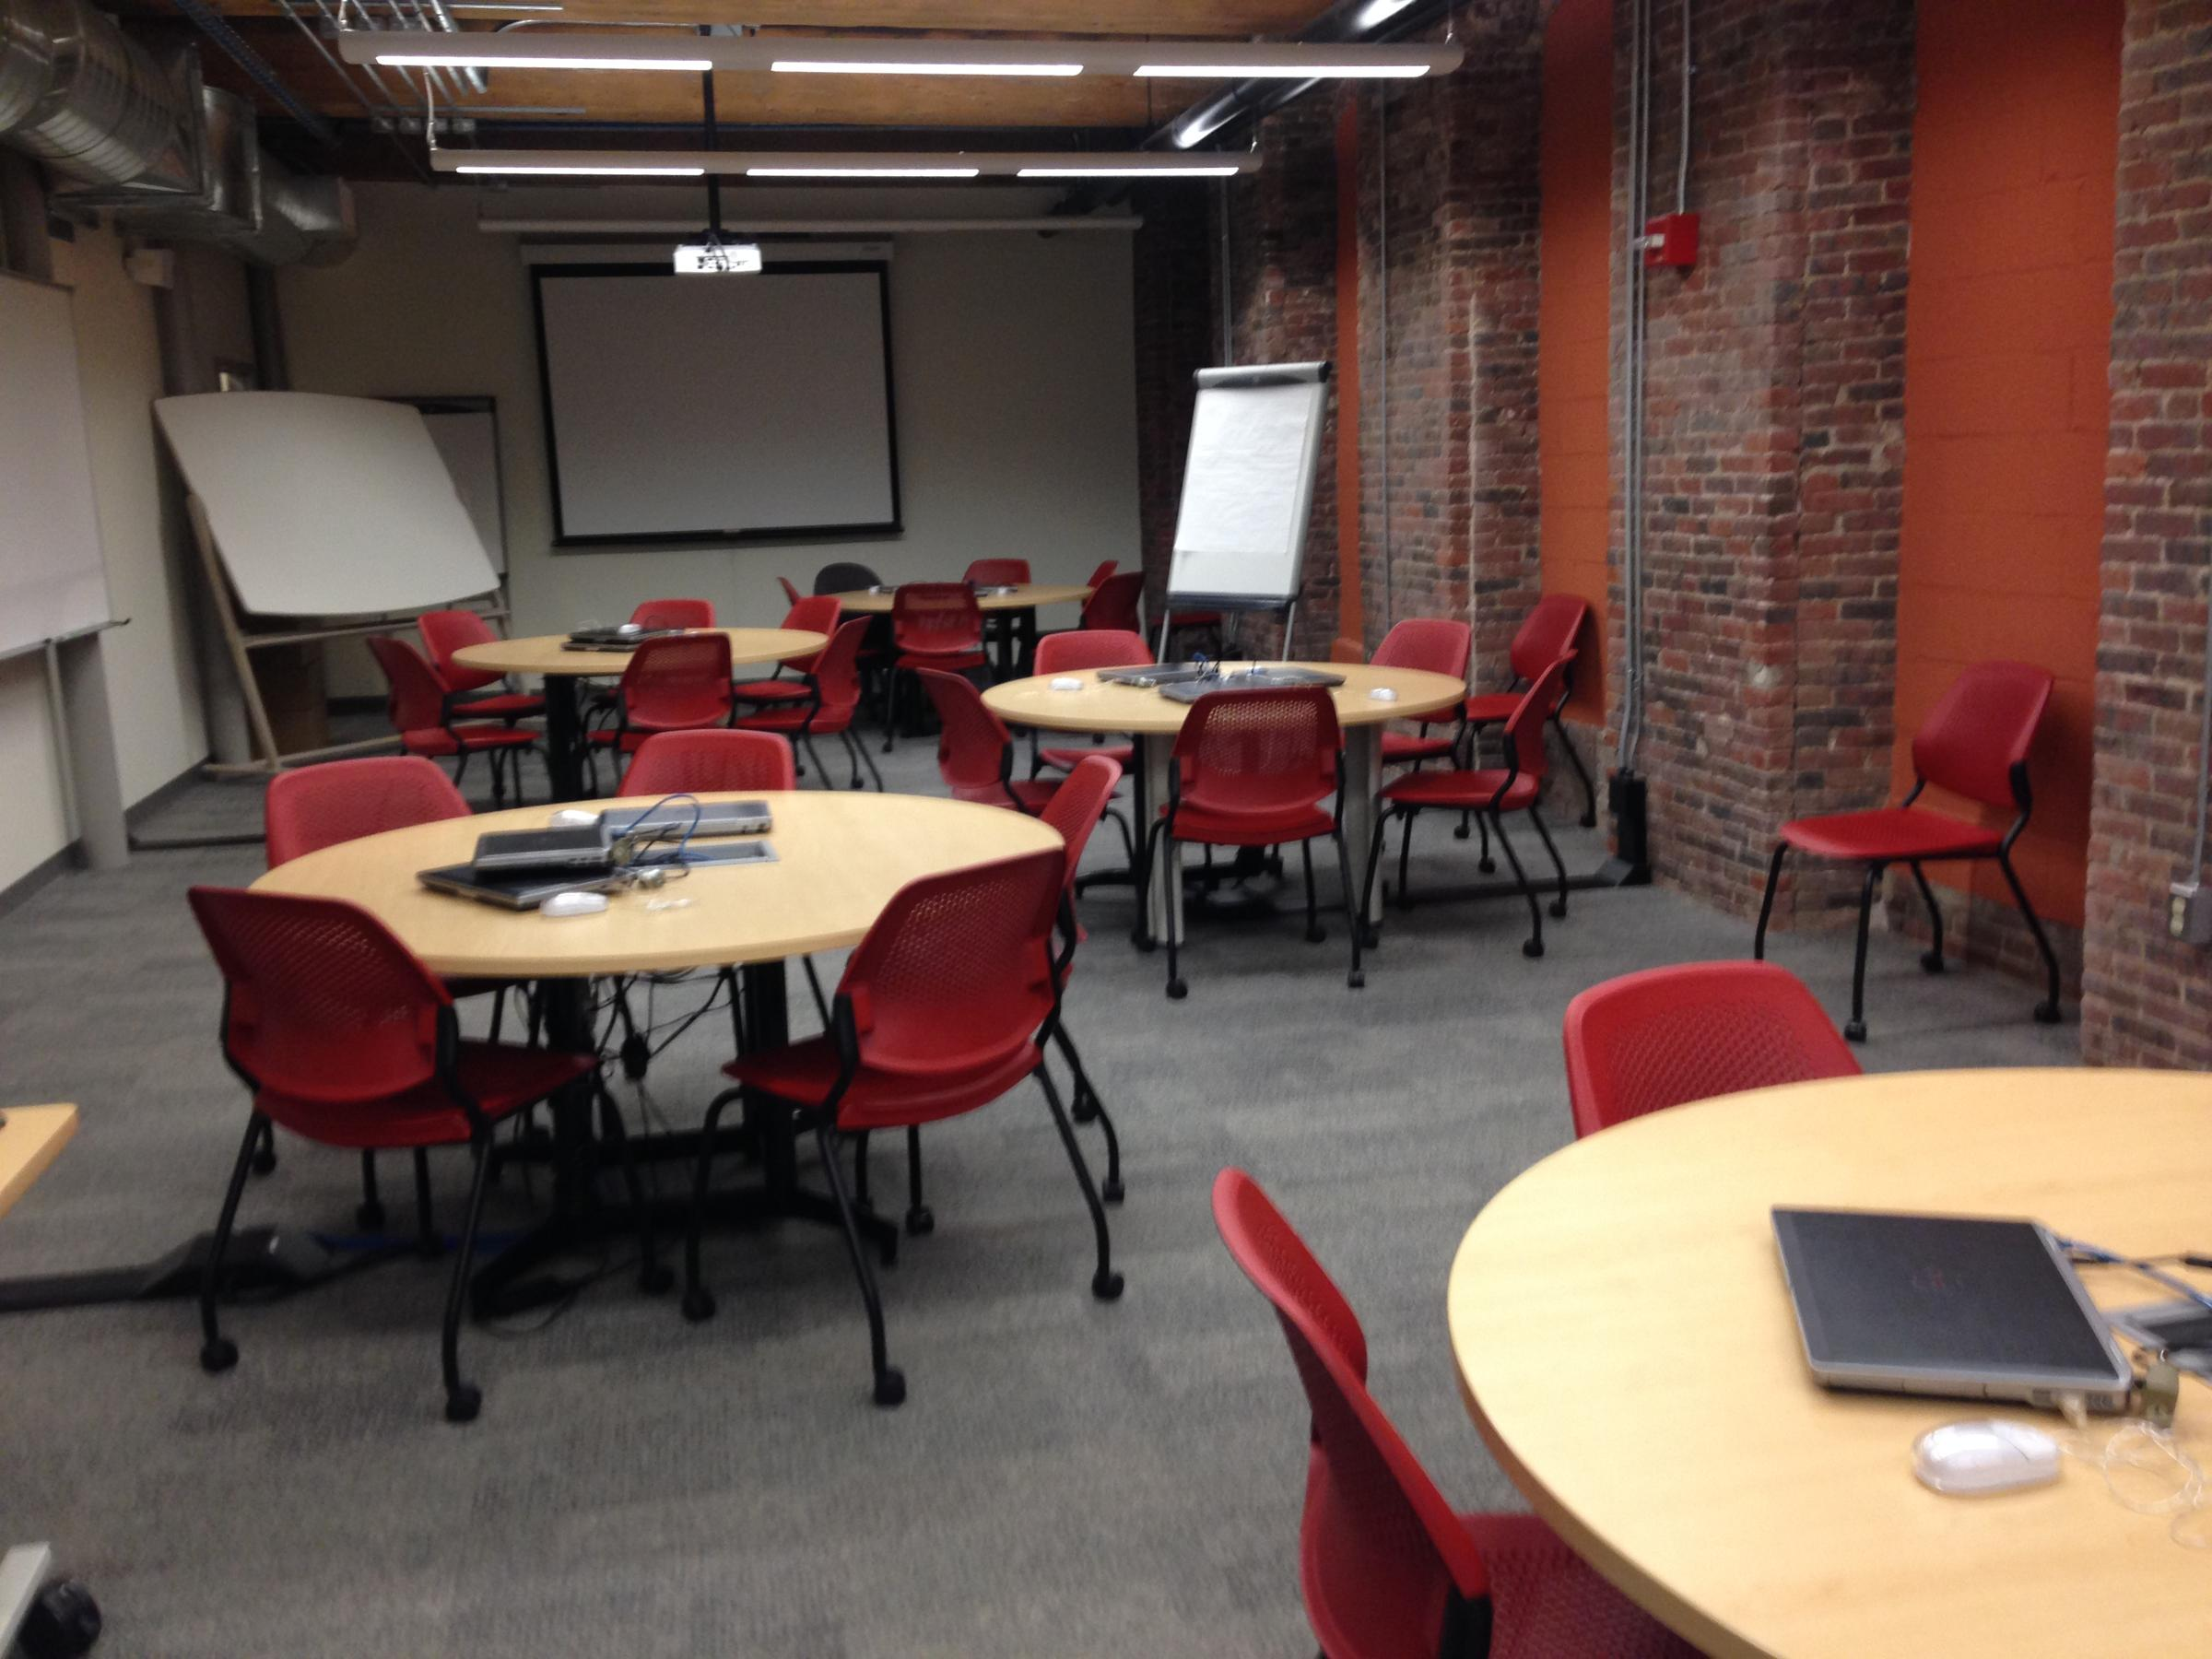 Unh Manchester Rethinks Classroom Design Ahead Of Move